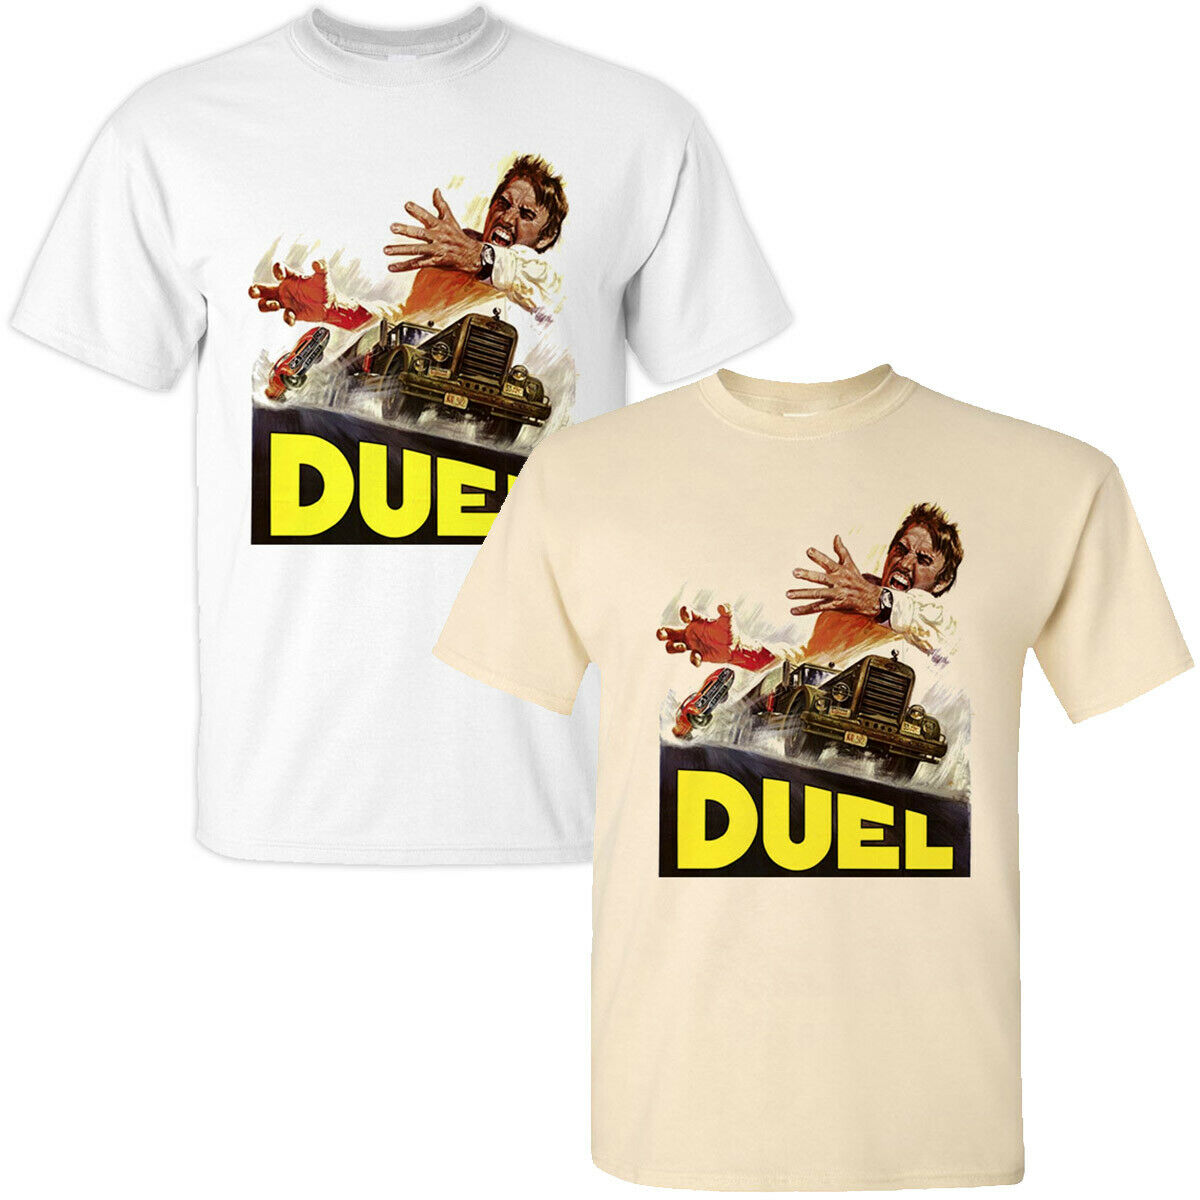 Duel V1 Steven Spielberg Movie Poster 1971 Thriller T Shirt All Sizes S-3XL Tee Shirt Trendy Streetwear